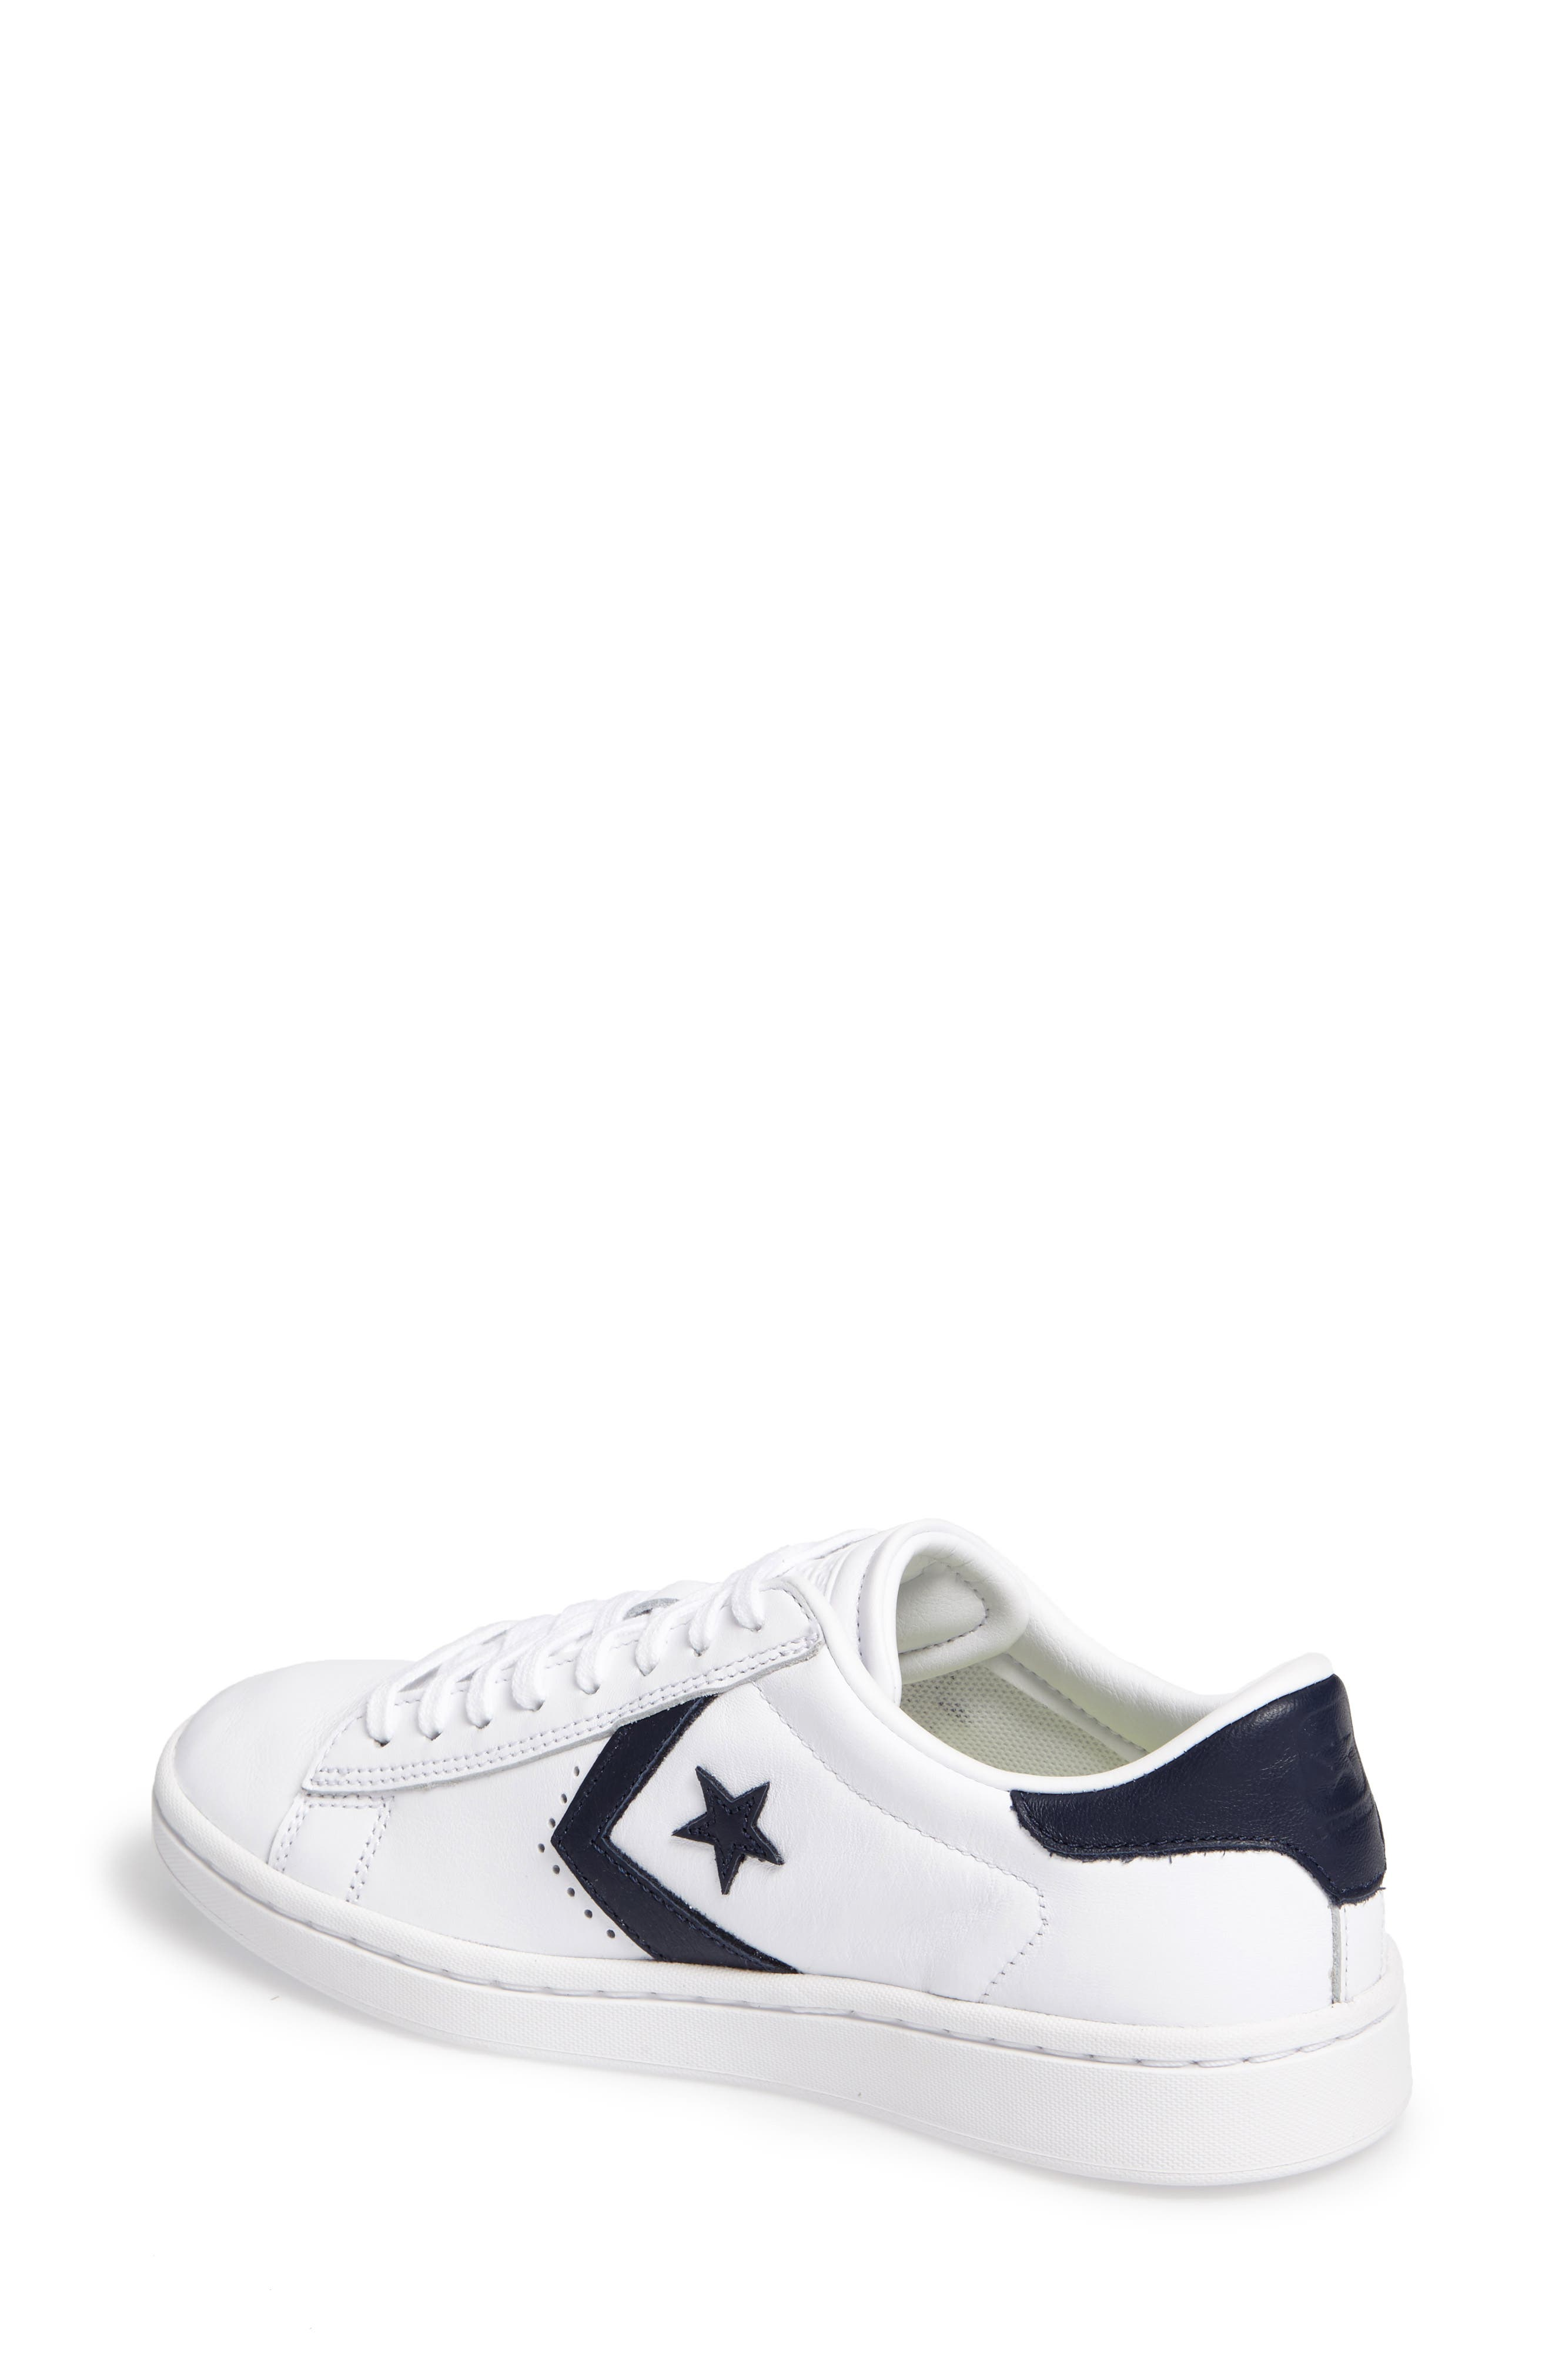 Alternate Image 2  - Converse Pro Leather LP Sneaker (Women)